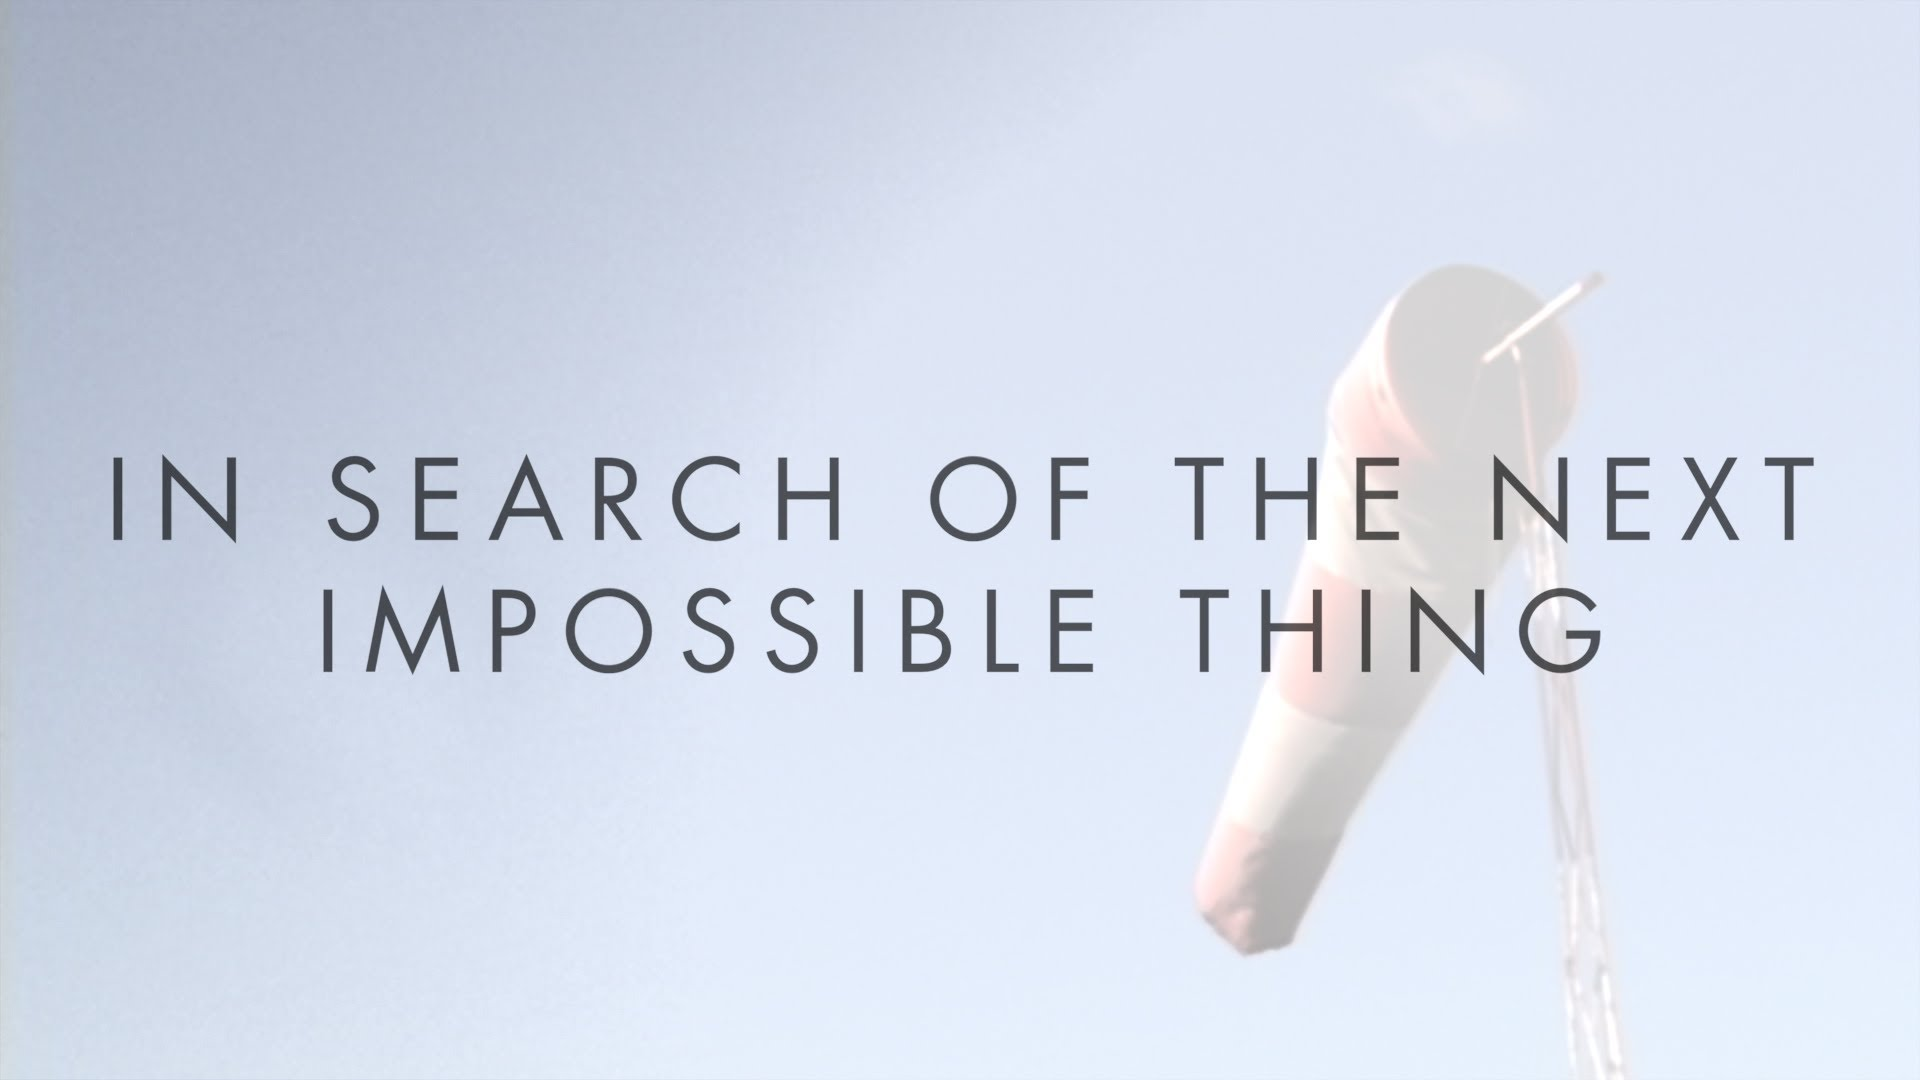 In Search of the Next Impossible Thing